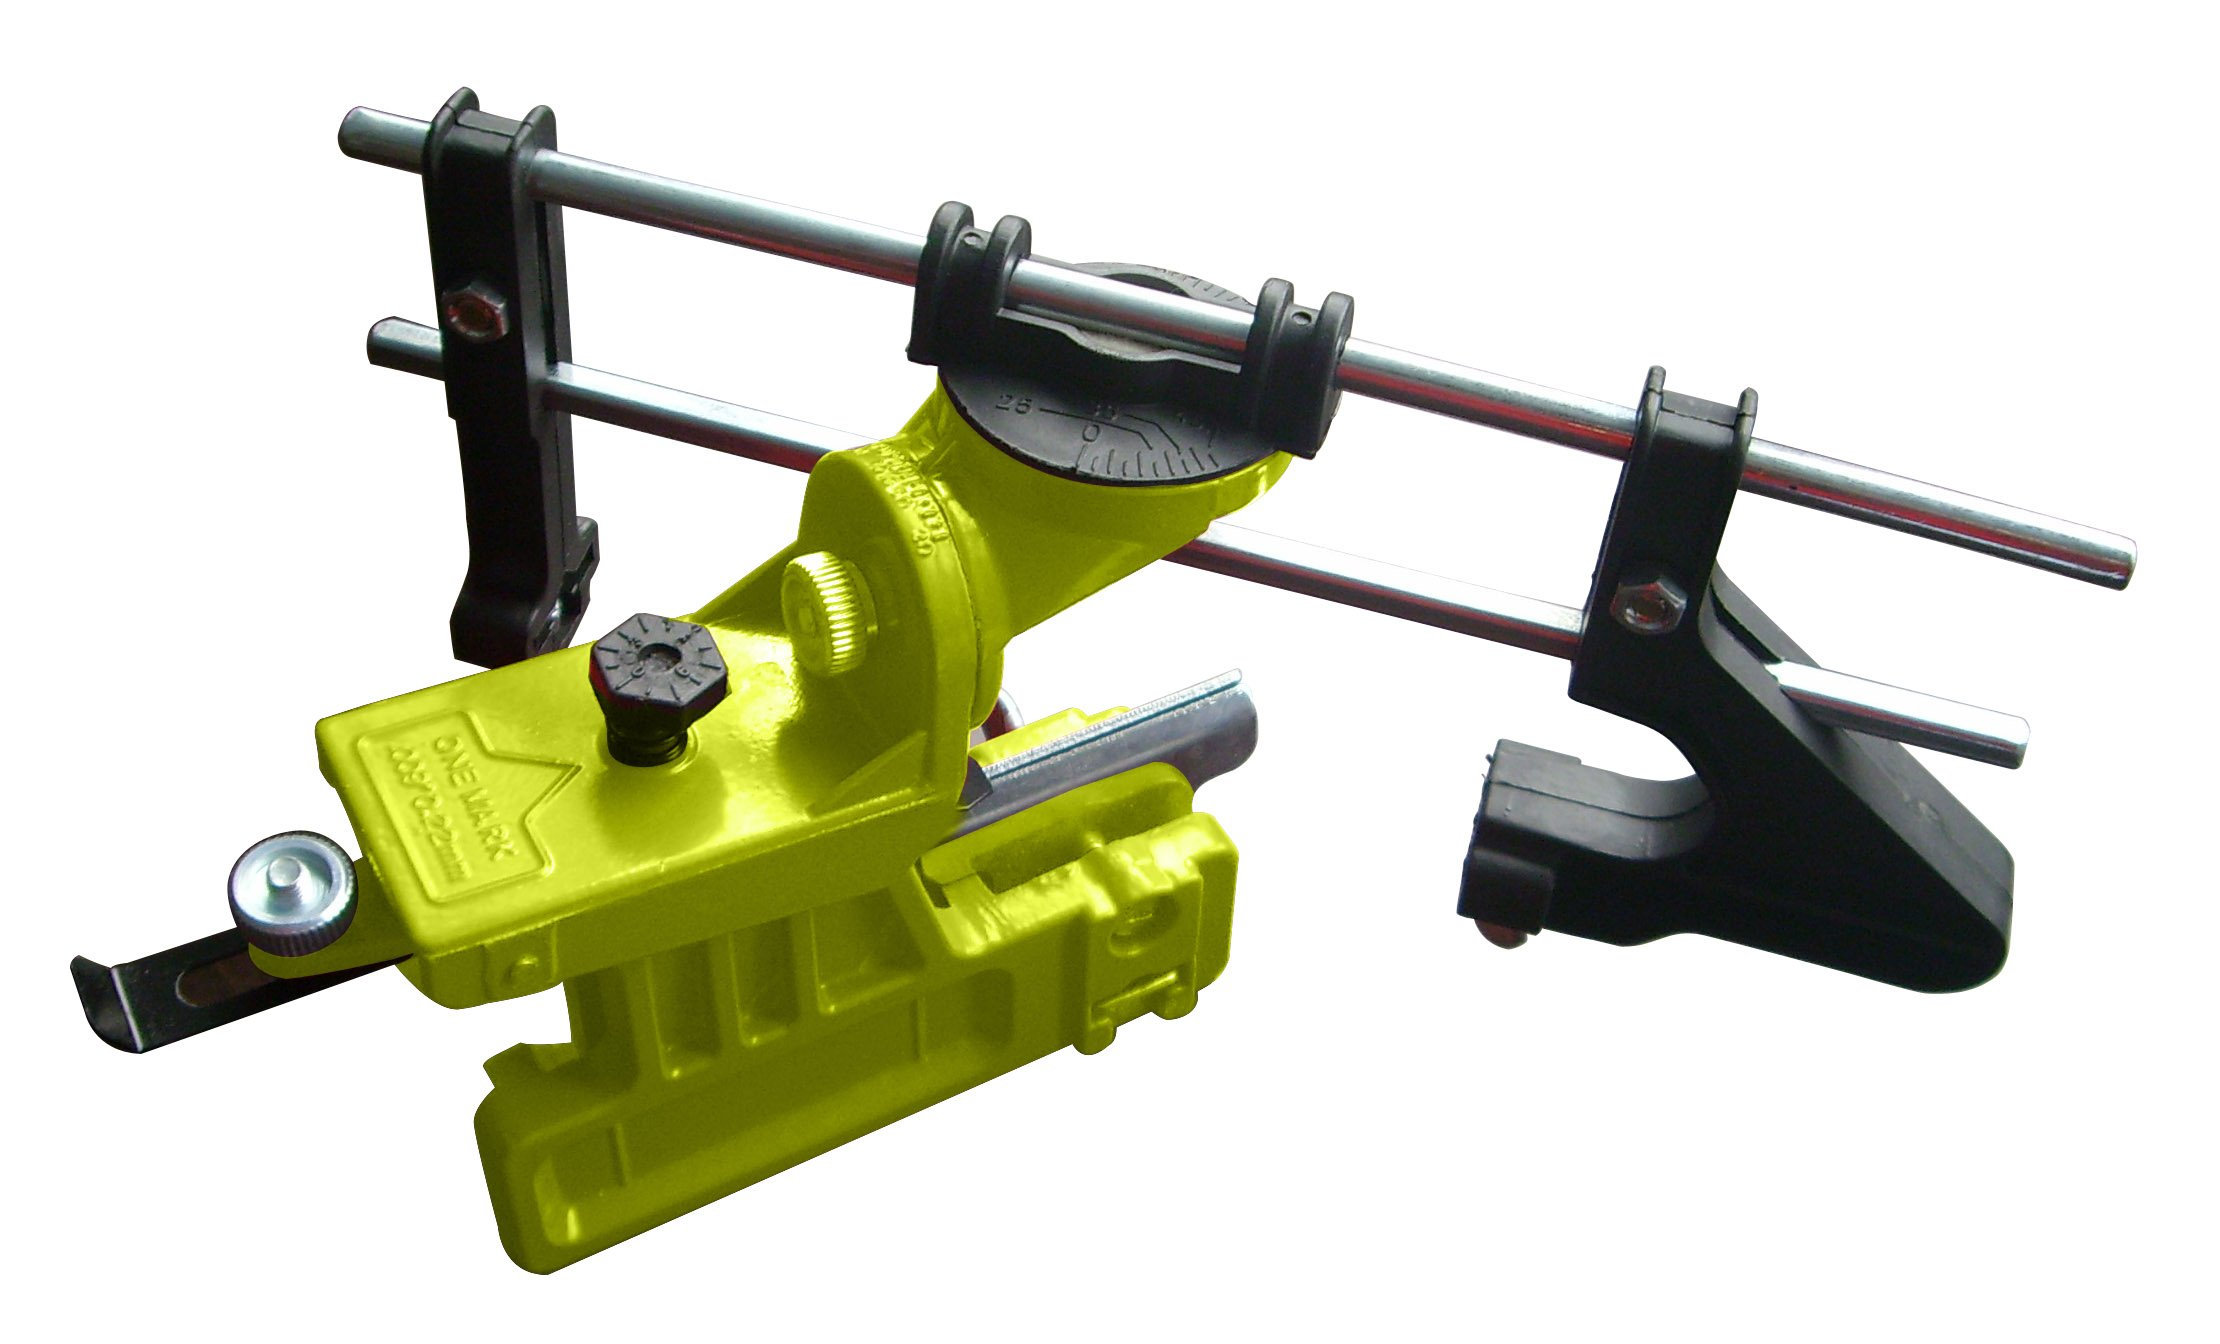 Timber Tuff CS-MBS Manual Bar Mount Chain Sharpener, Green by Timber Tuff